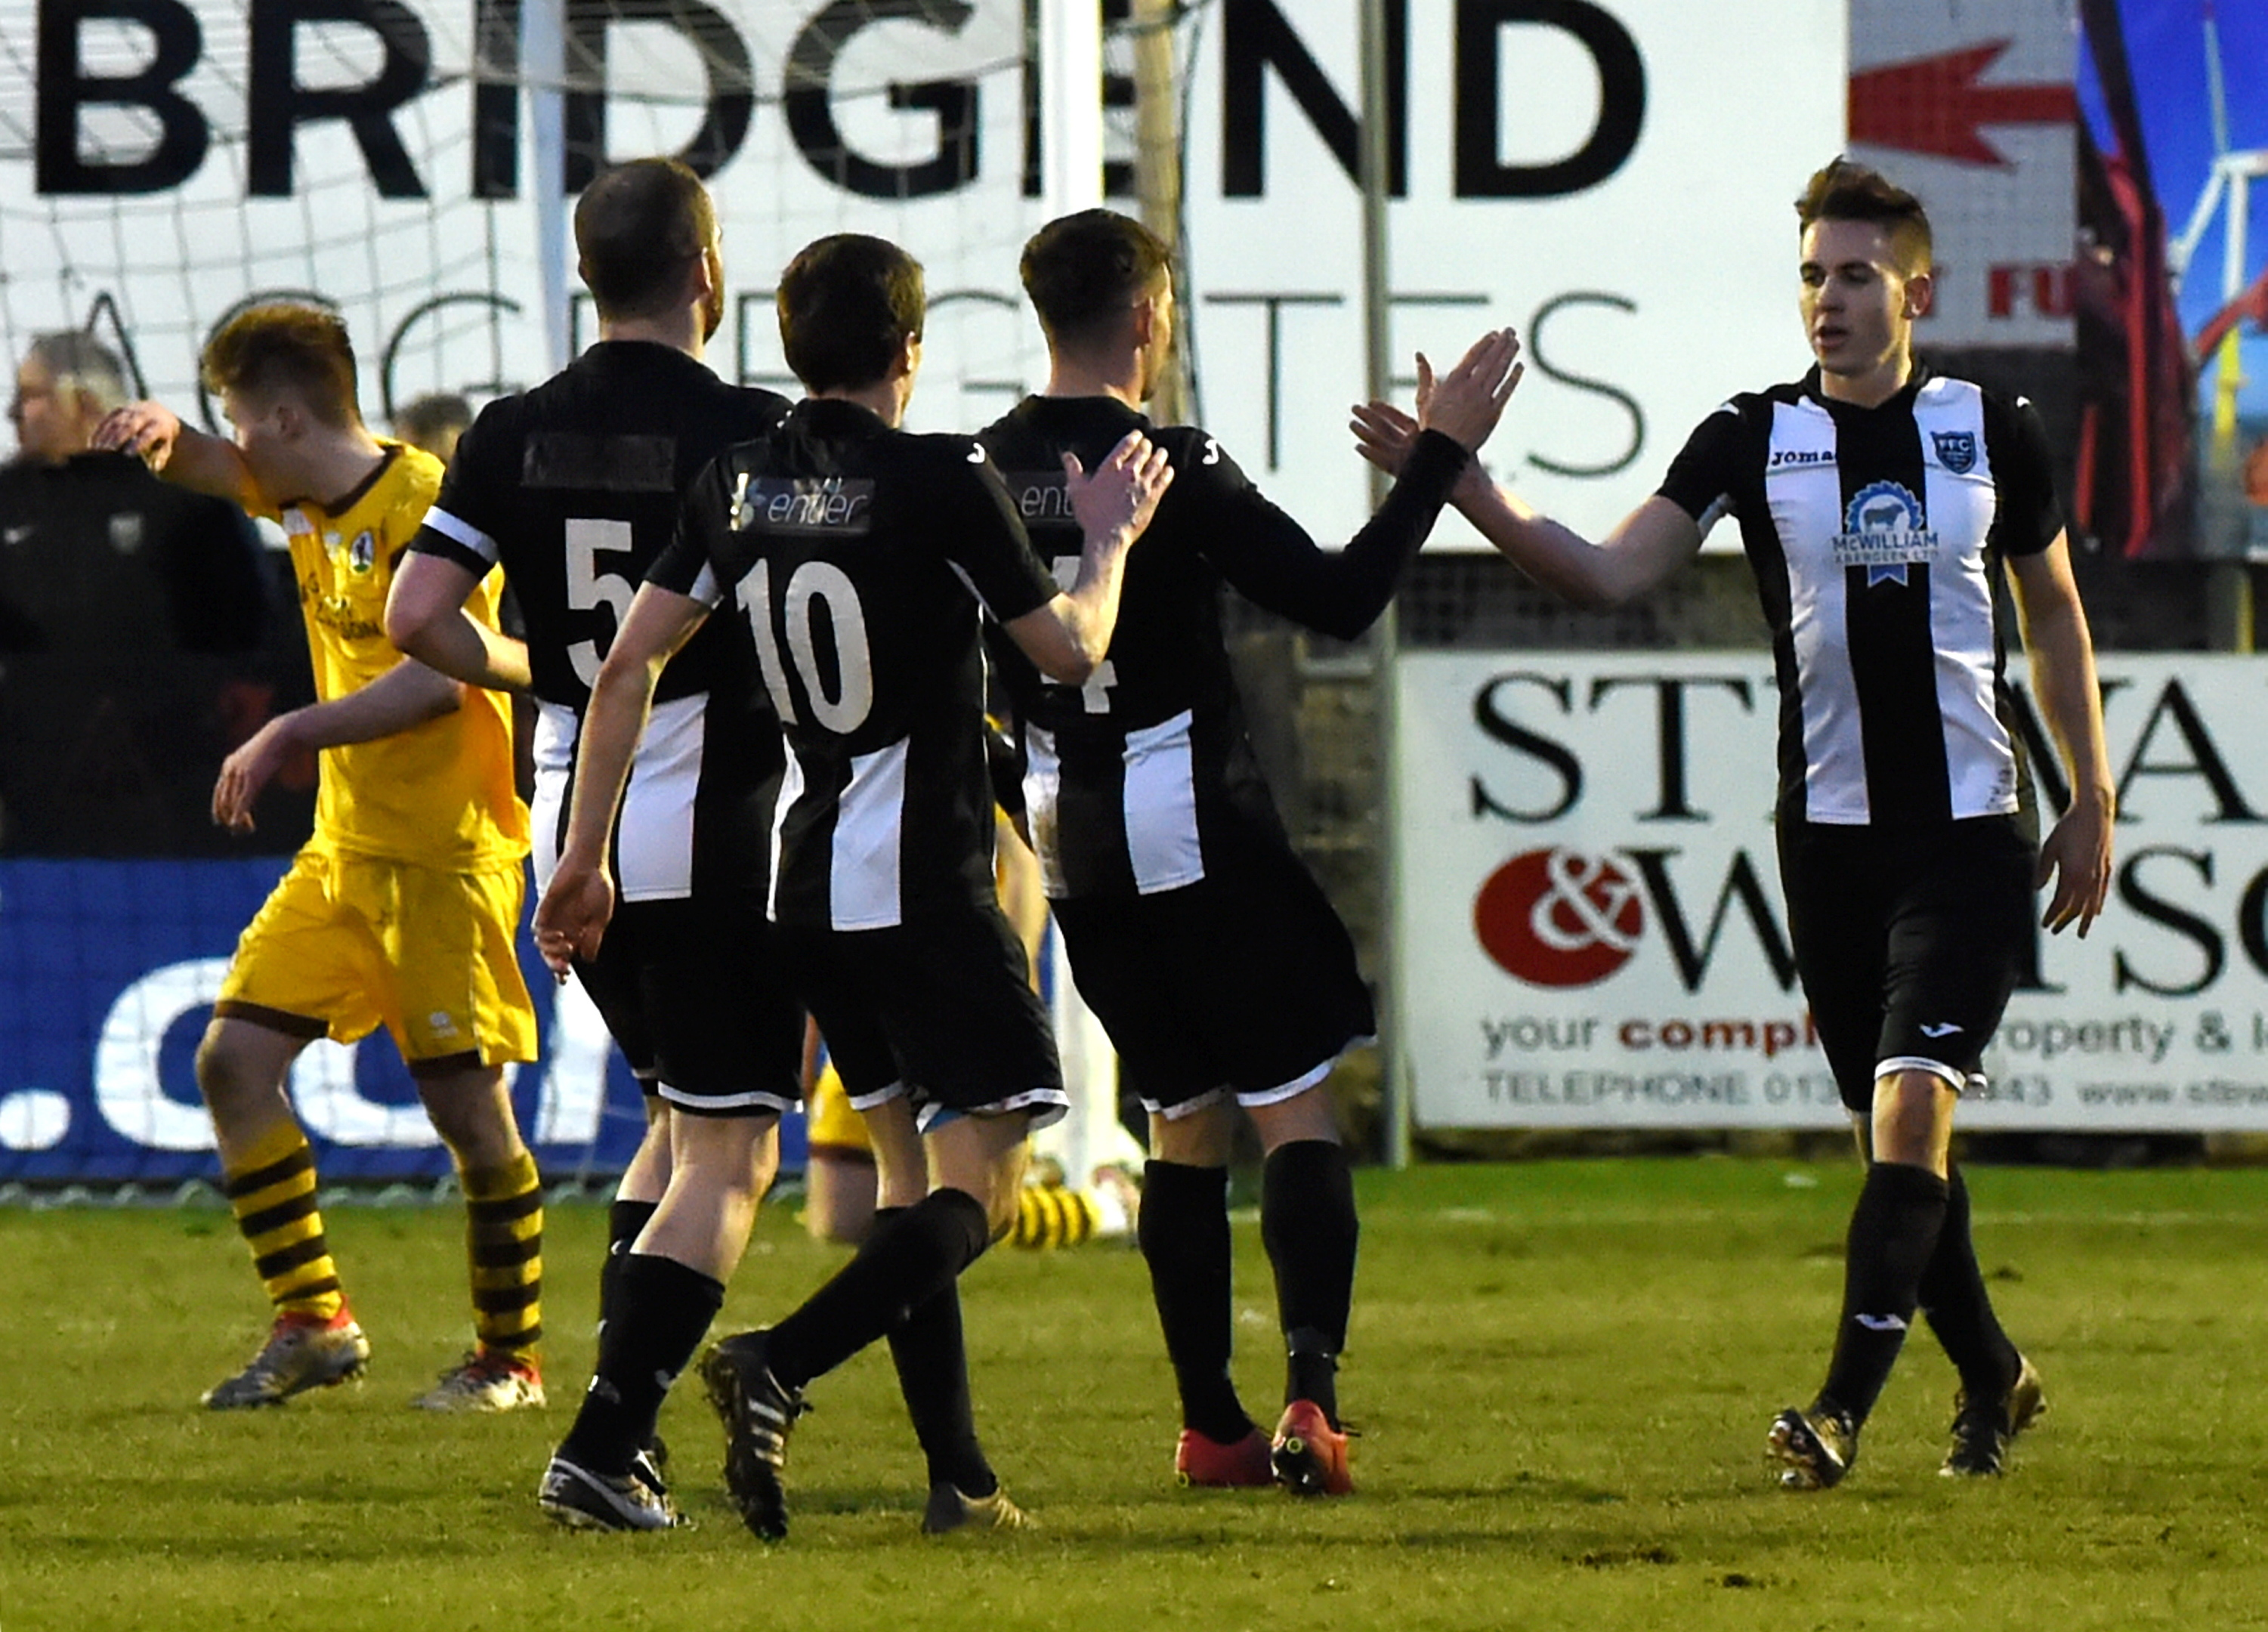 Fraserburgh get a big win in today's Scottish Highland League